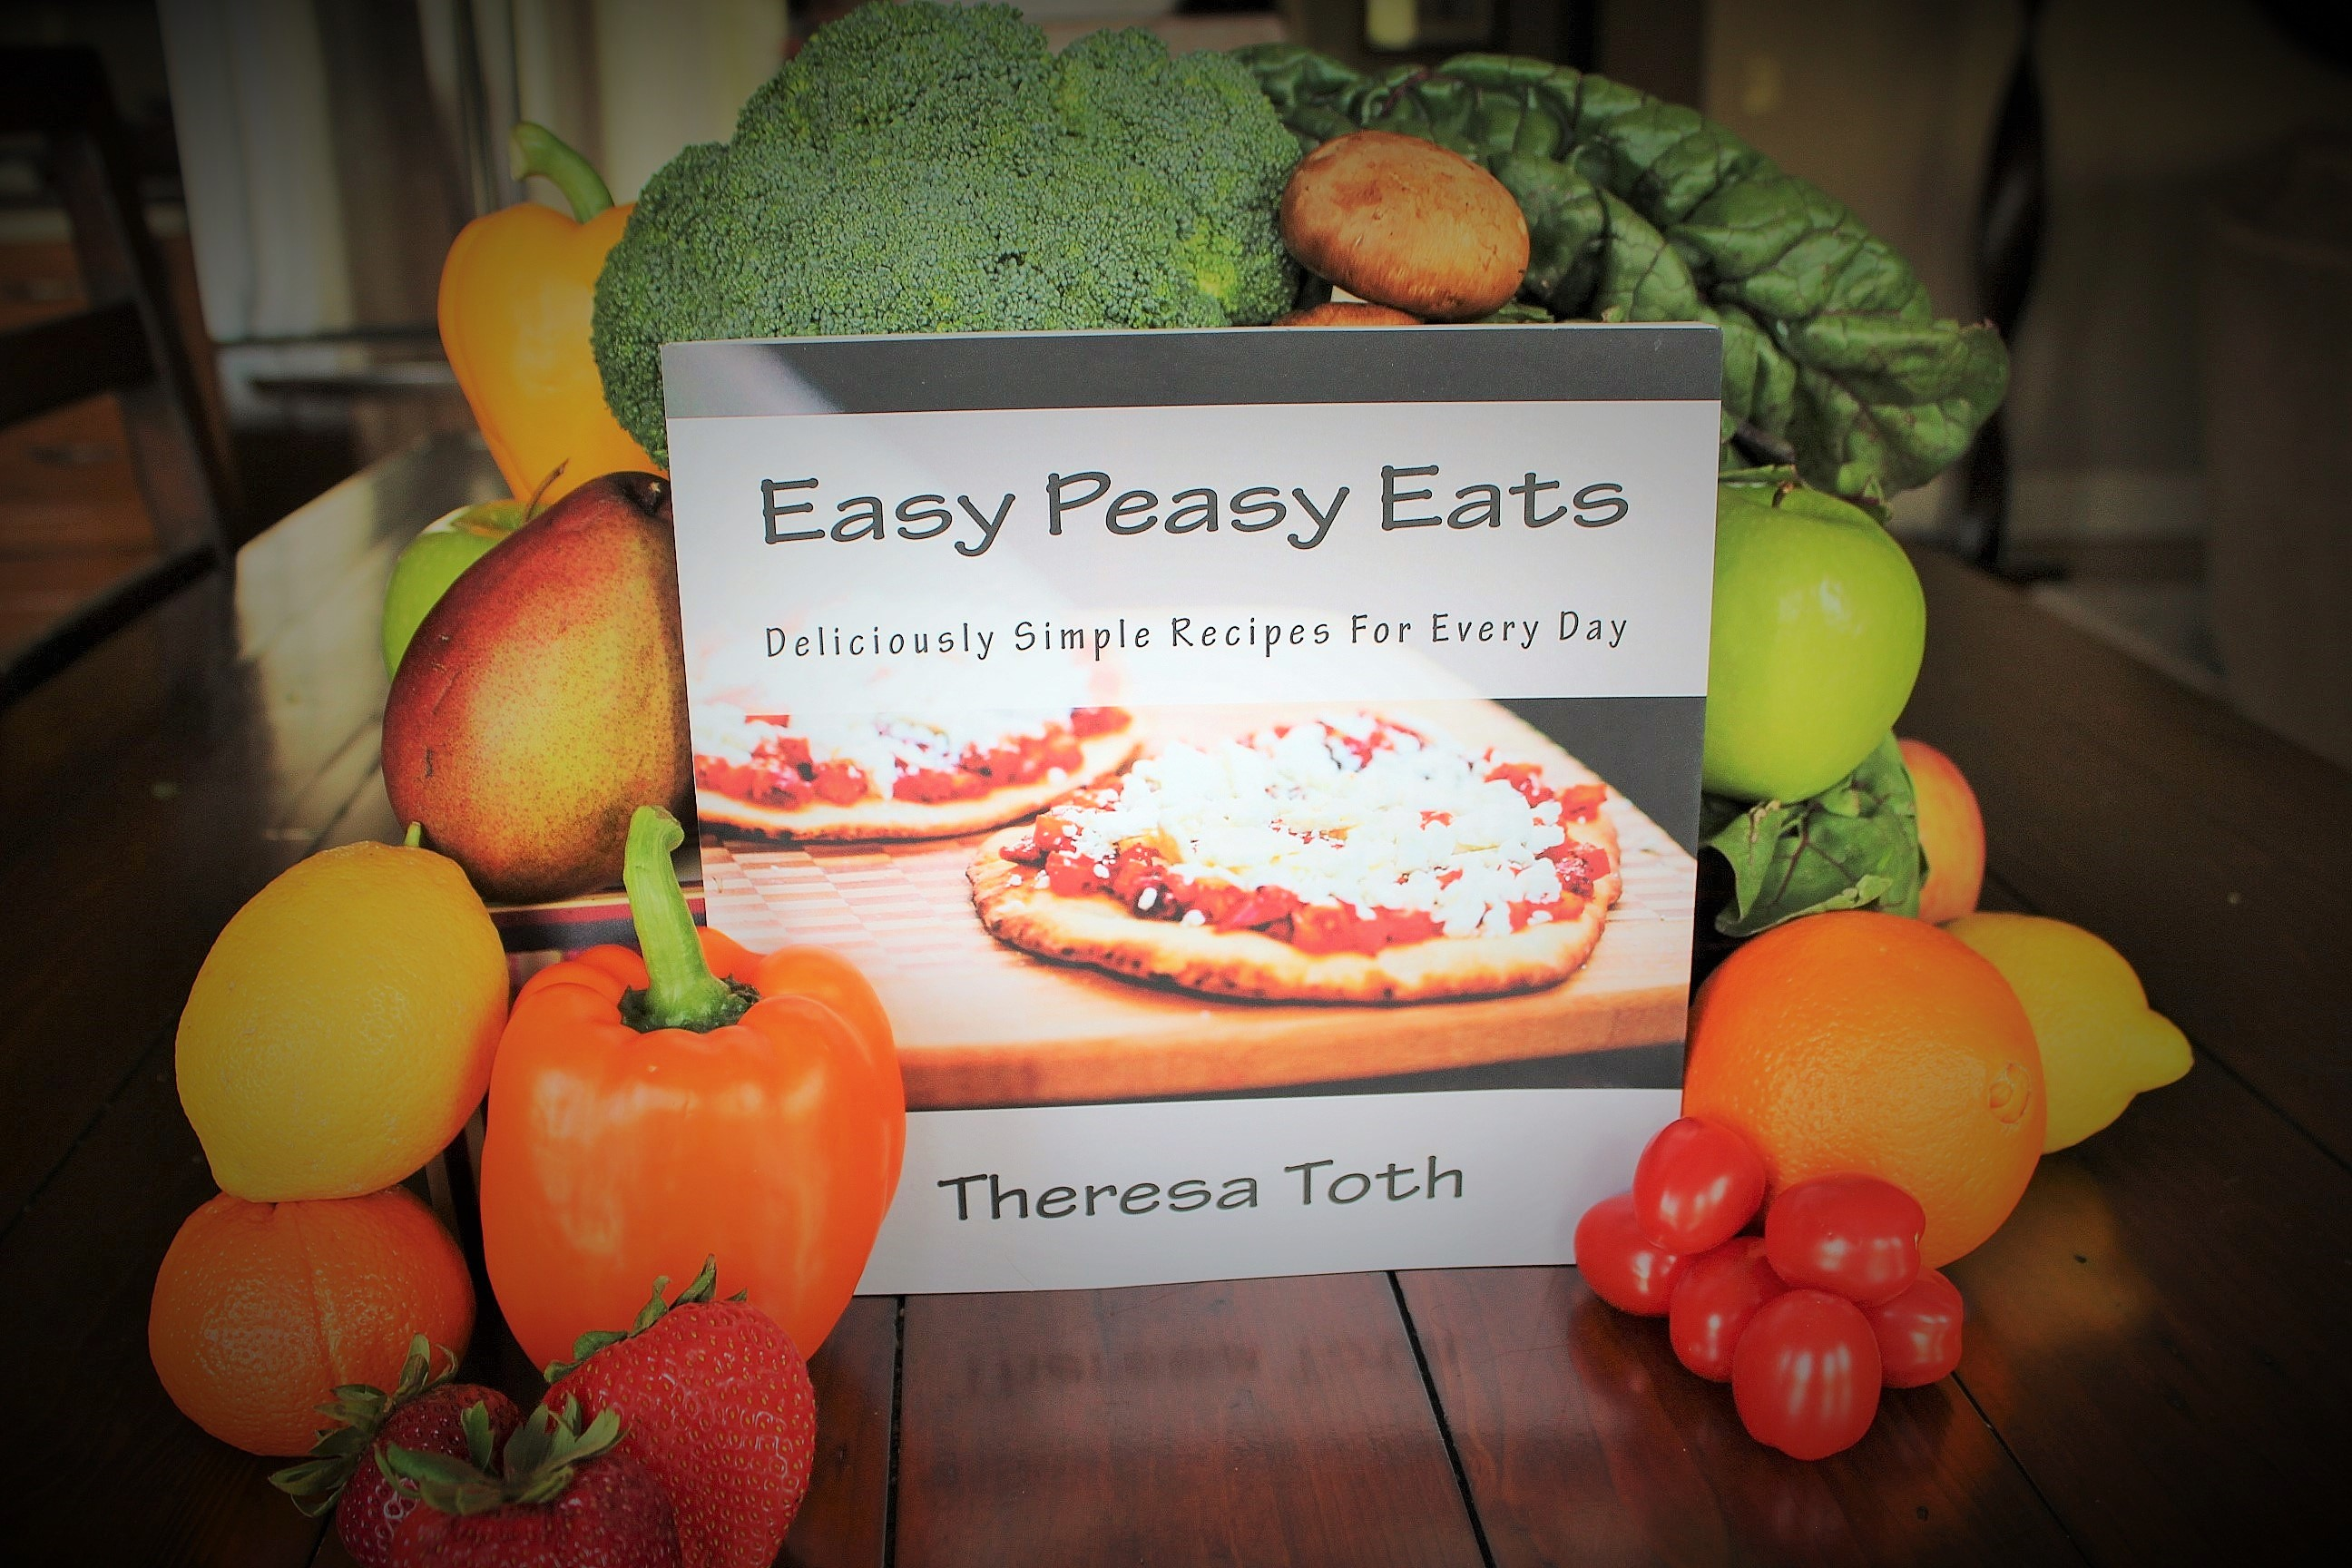 Get your copy of The Easy Peasy Eats Cookbook